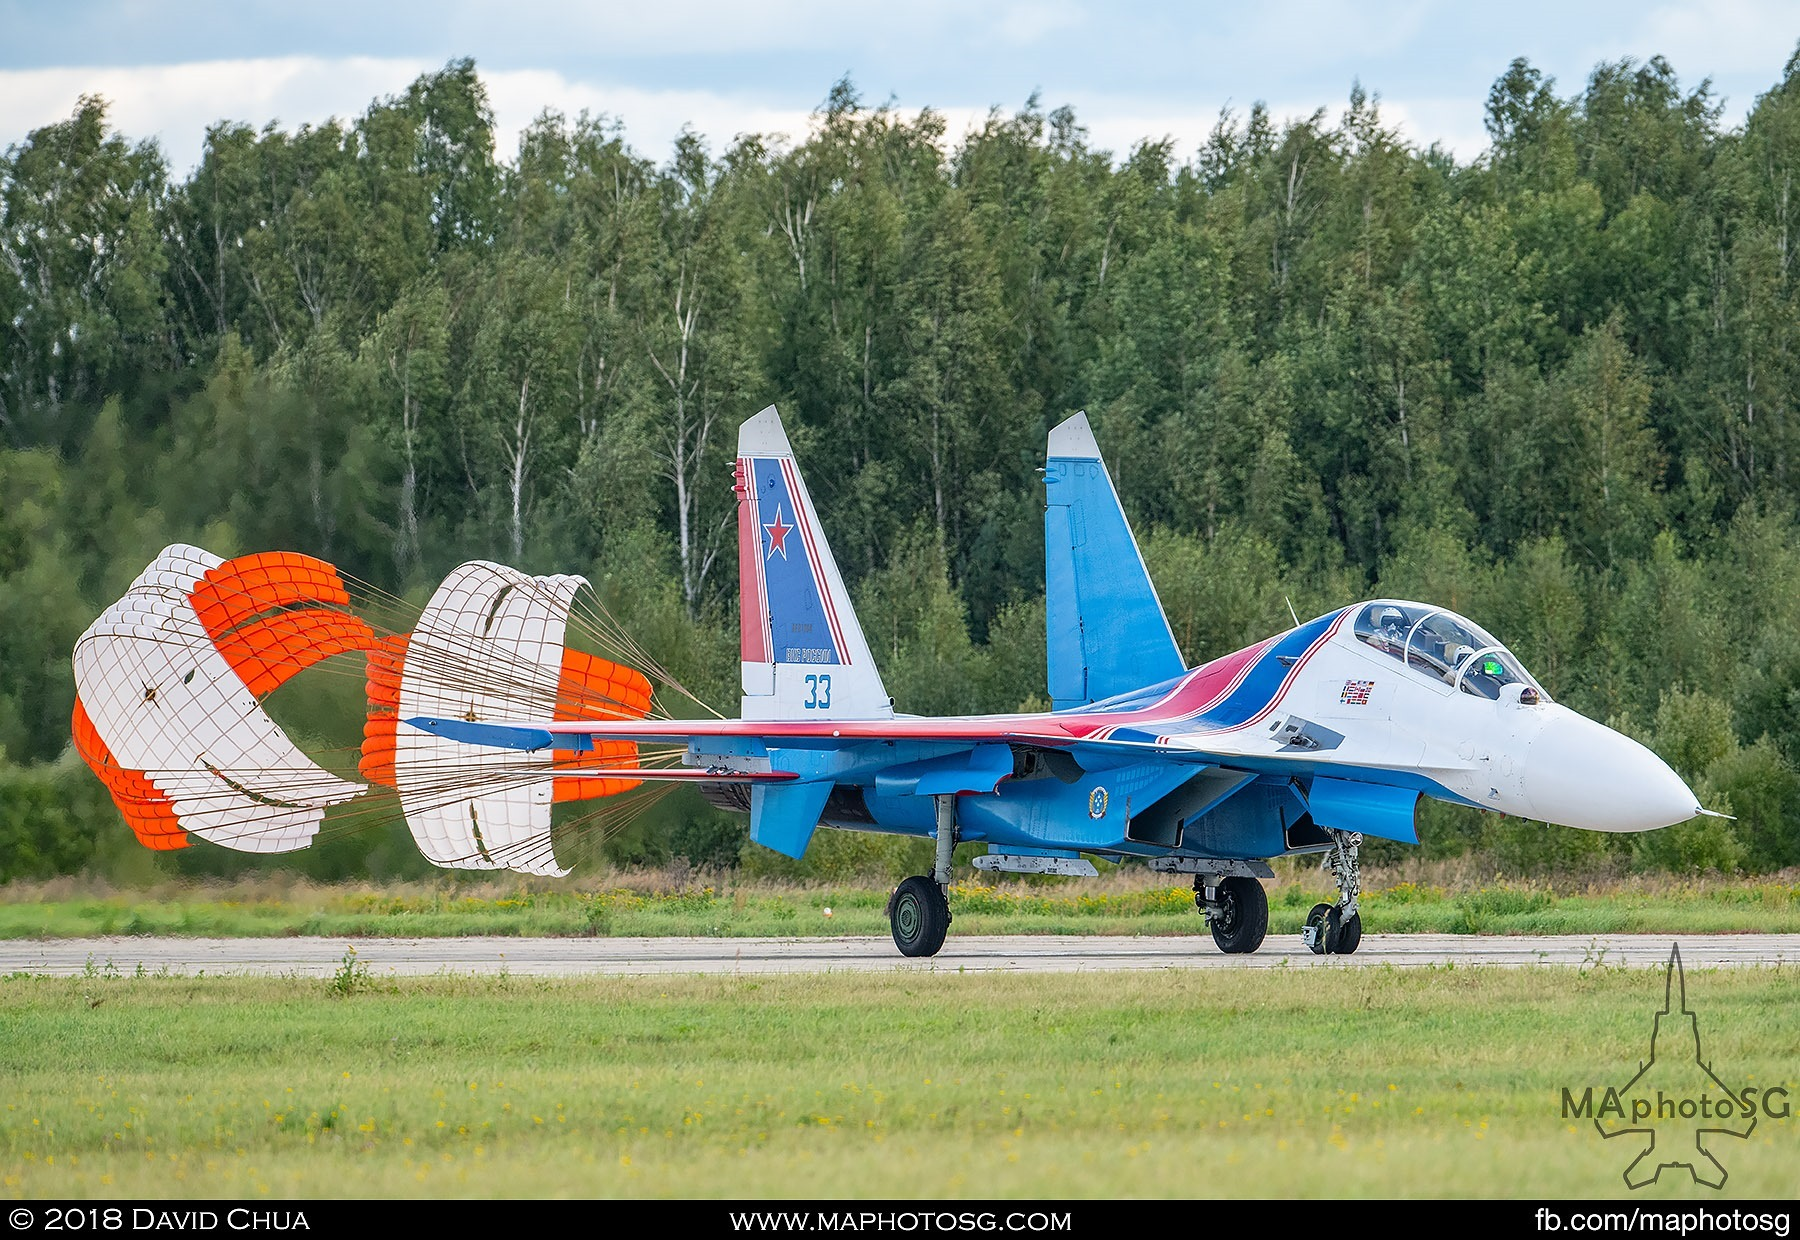 "49. A Russian Knights Su-27sm ""Flanker"" lands on the runway as they complete their aerial display performance."